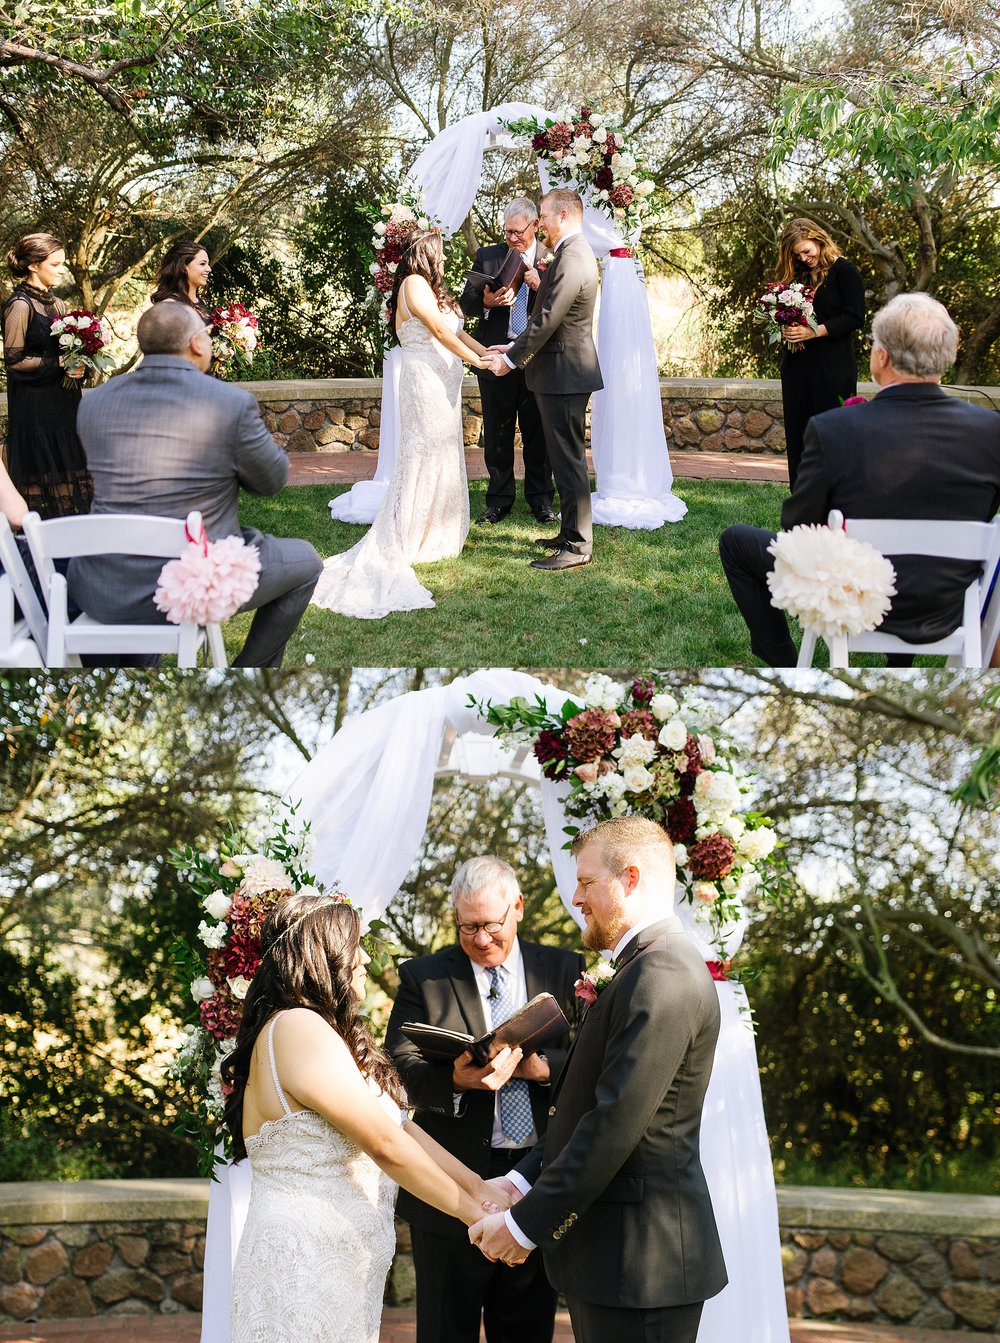 enissablake_Rengstorff_house_outdoor_wedding_cdp_0016.jpg